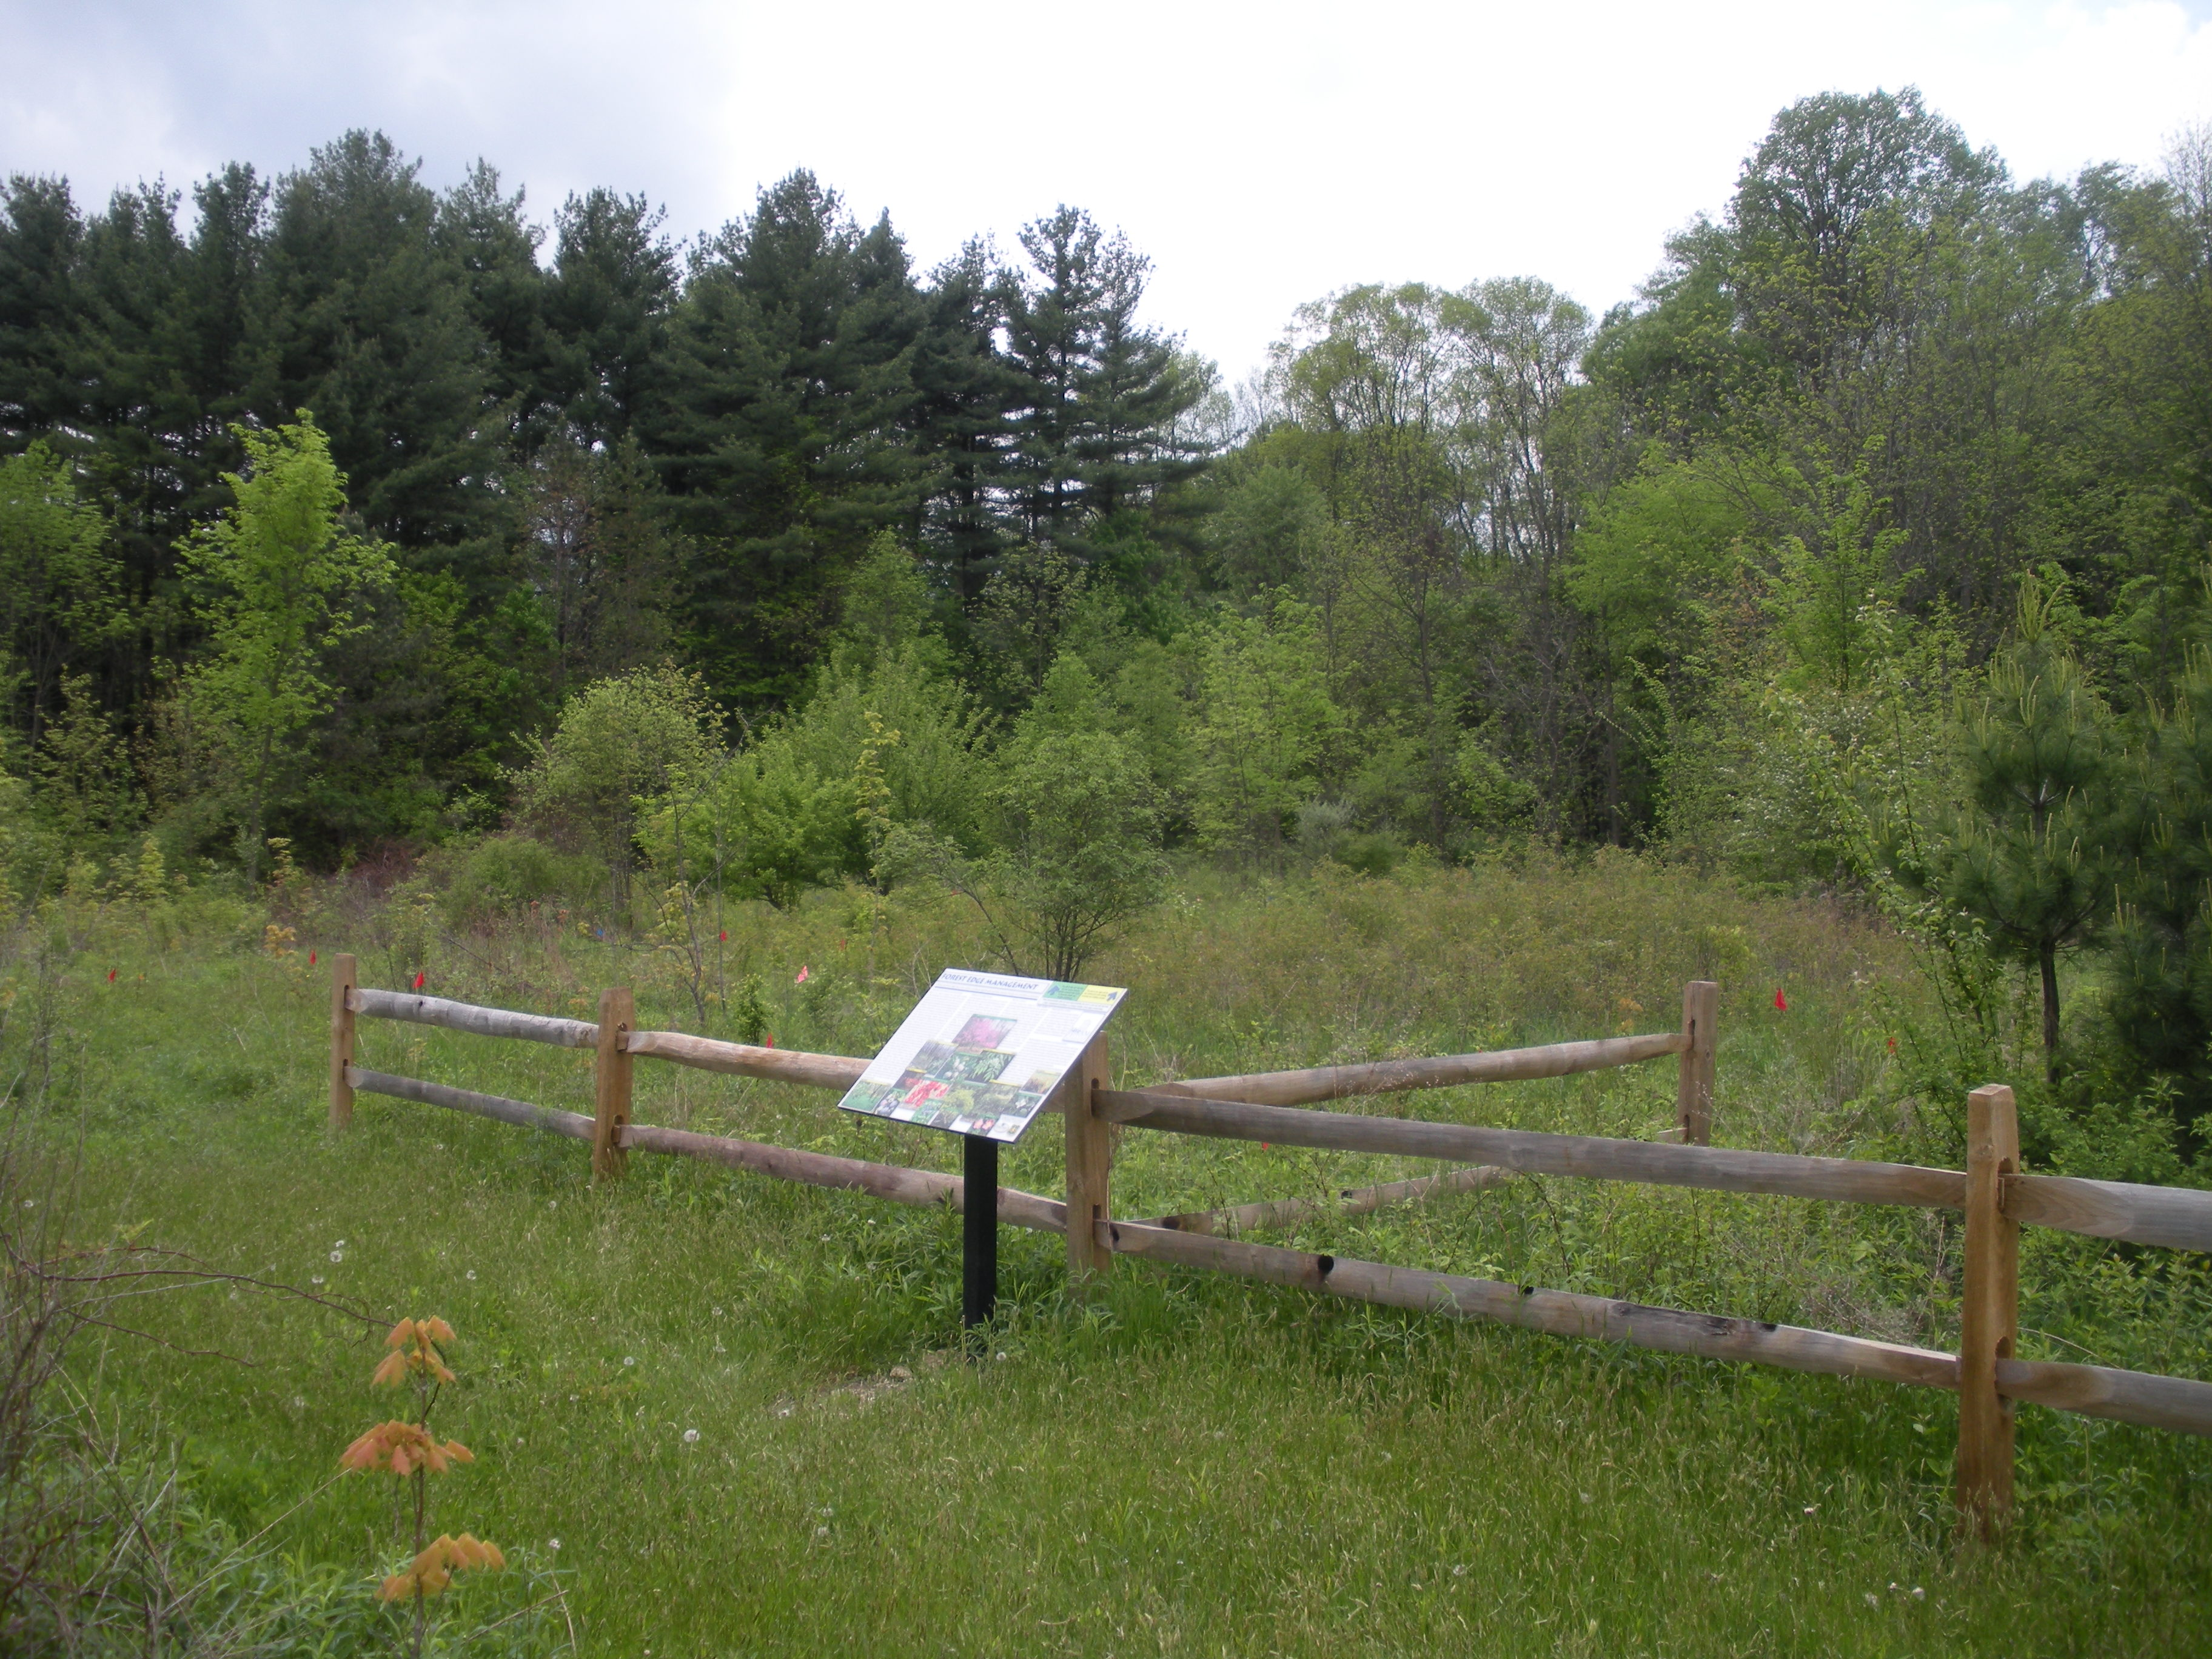 221 Acres Of Hiram College S James H Barrow Field Station